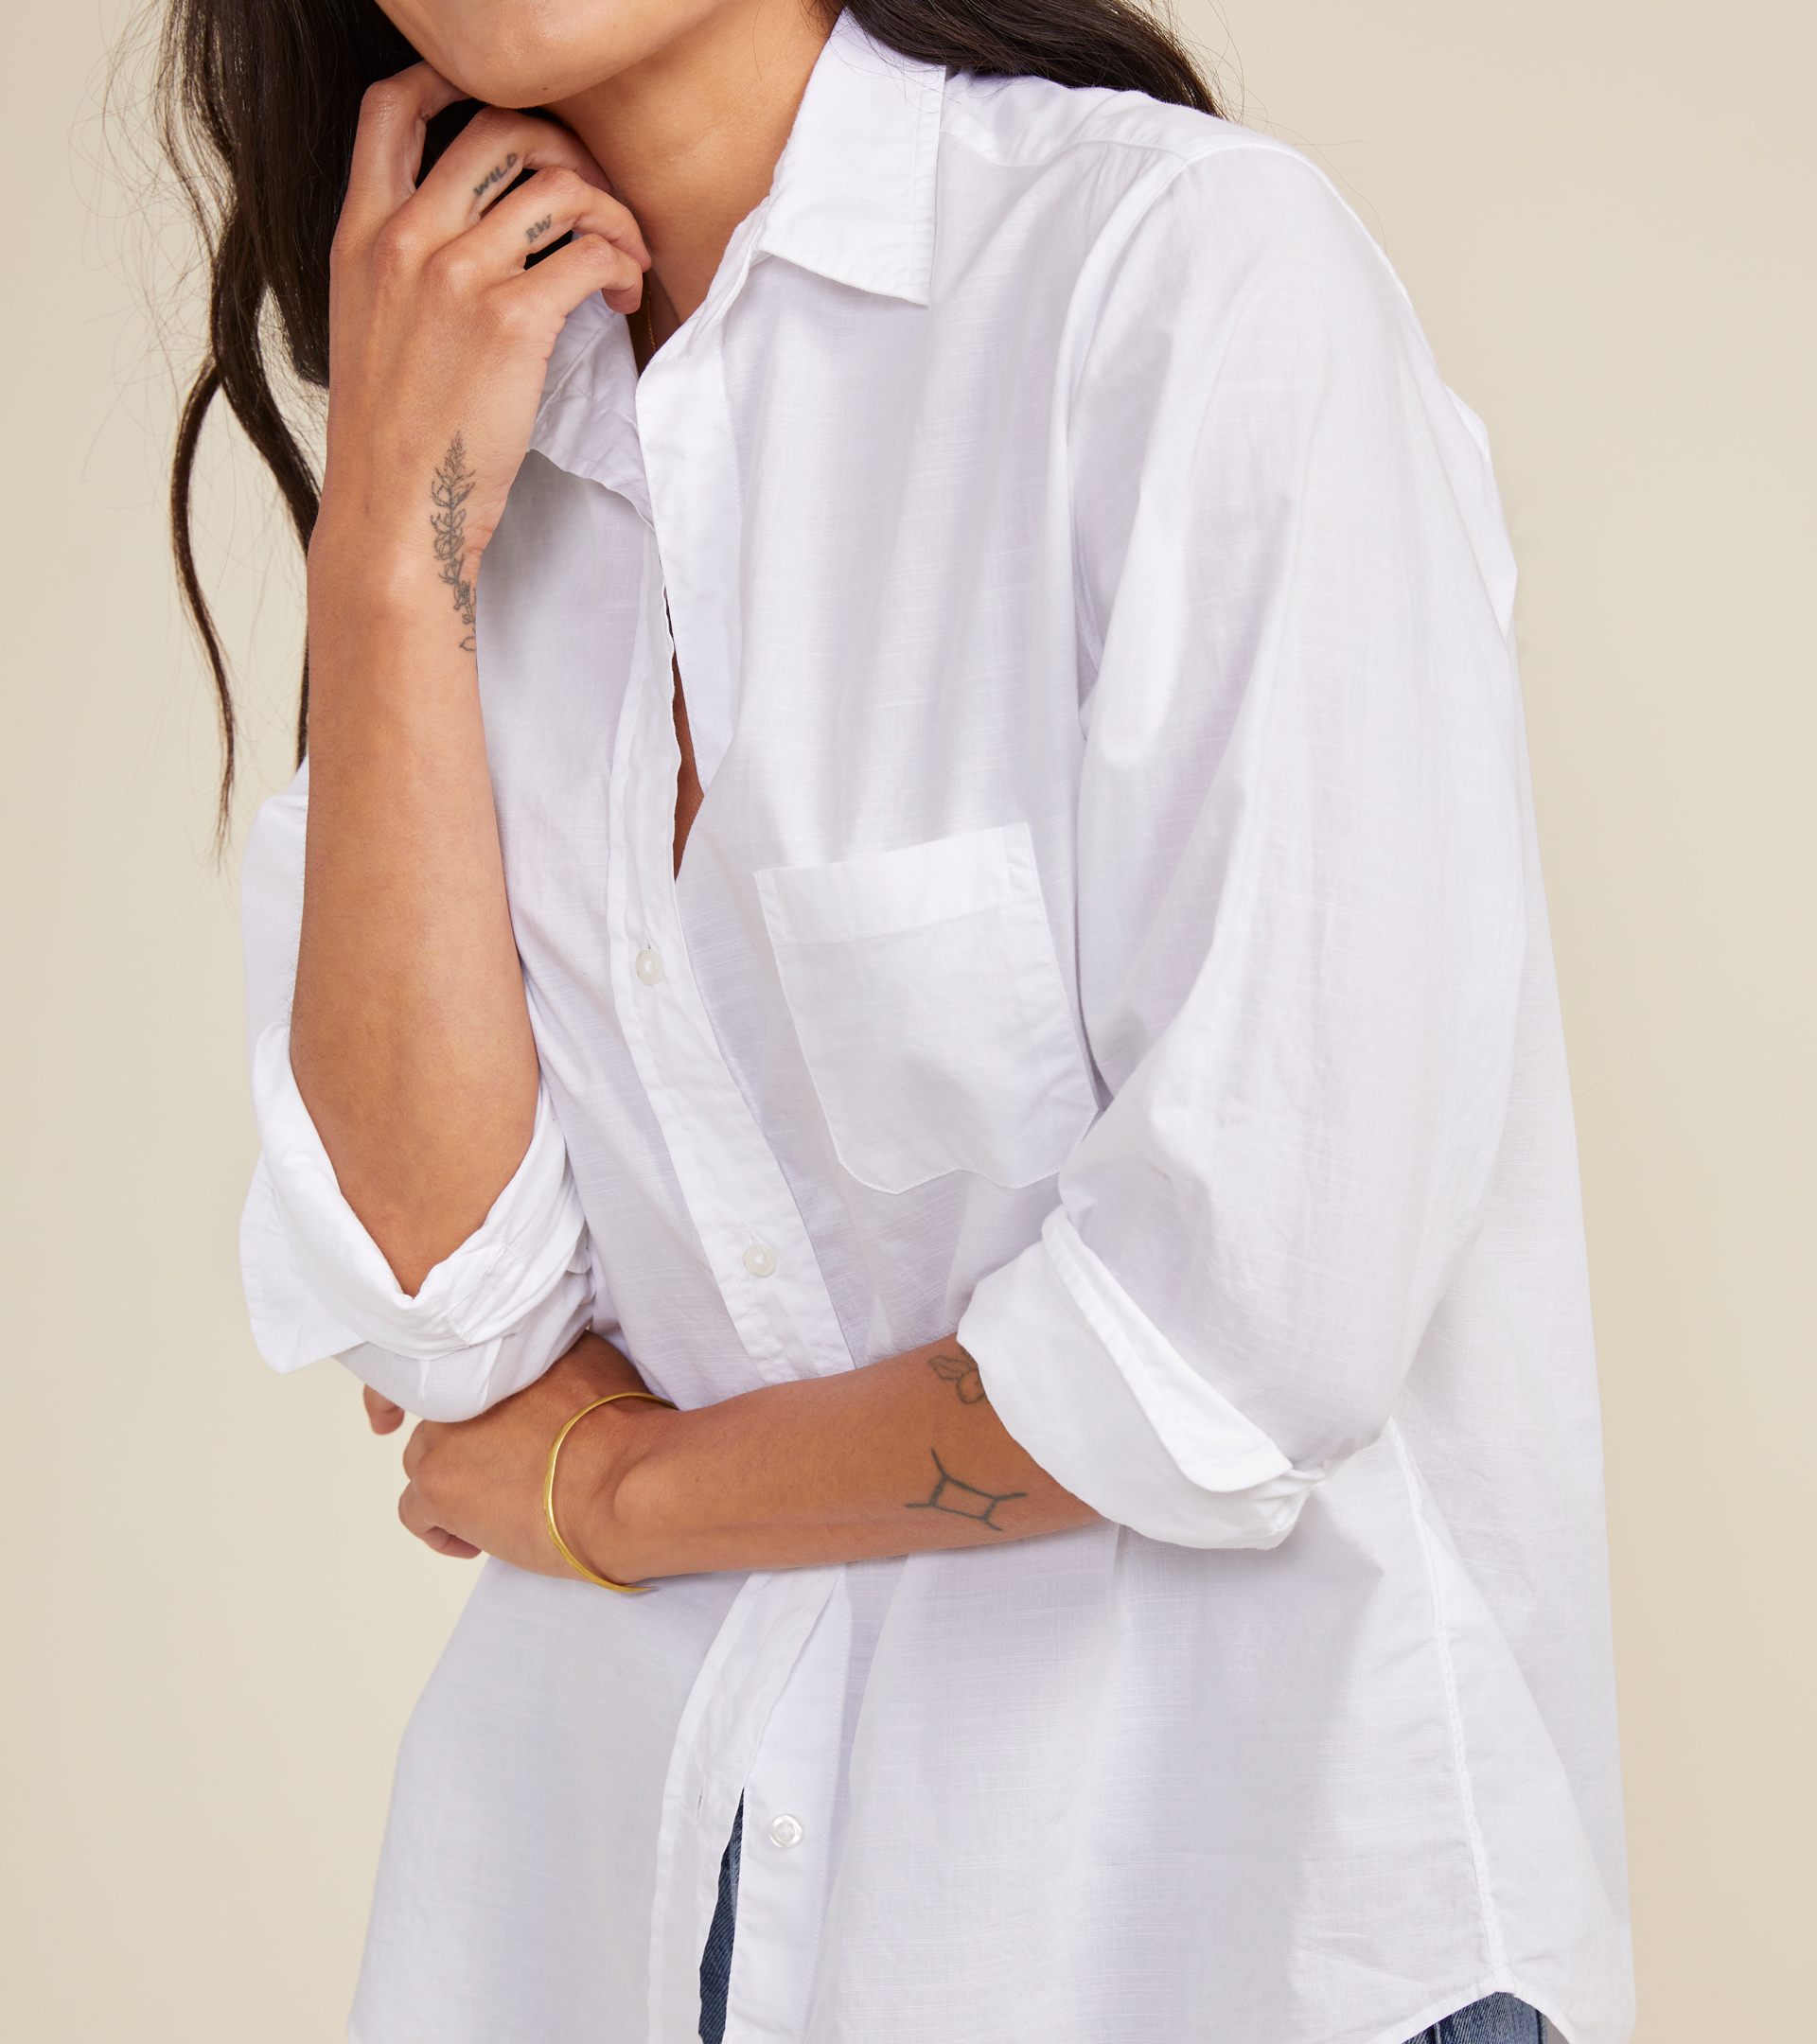 Image of The Hero Classic White, Washed Cotton